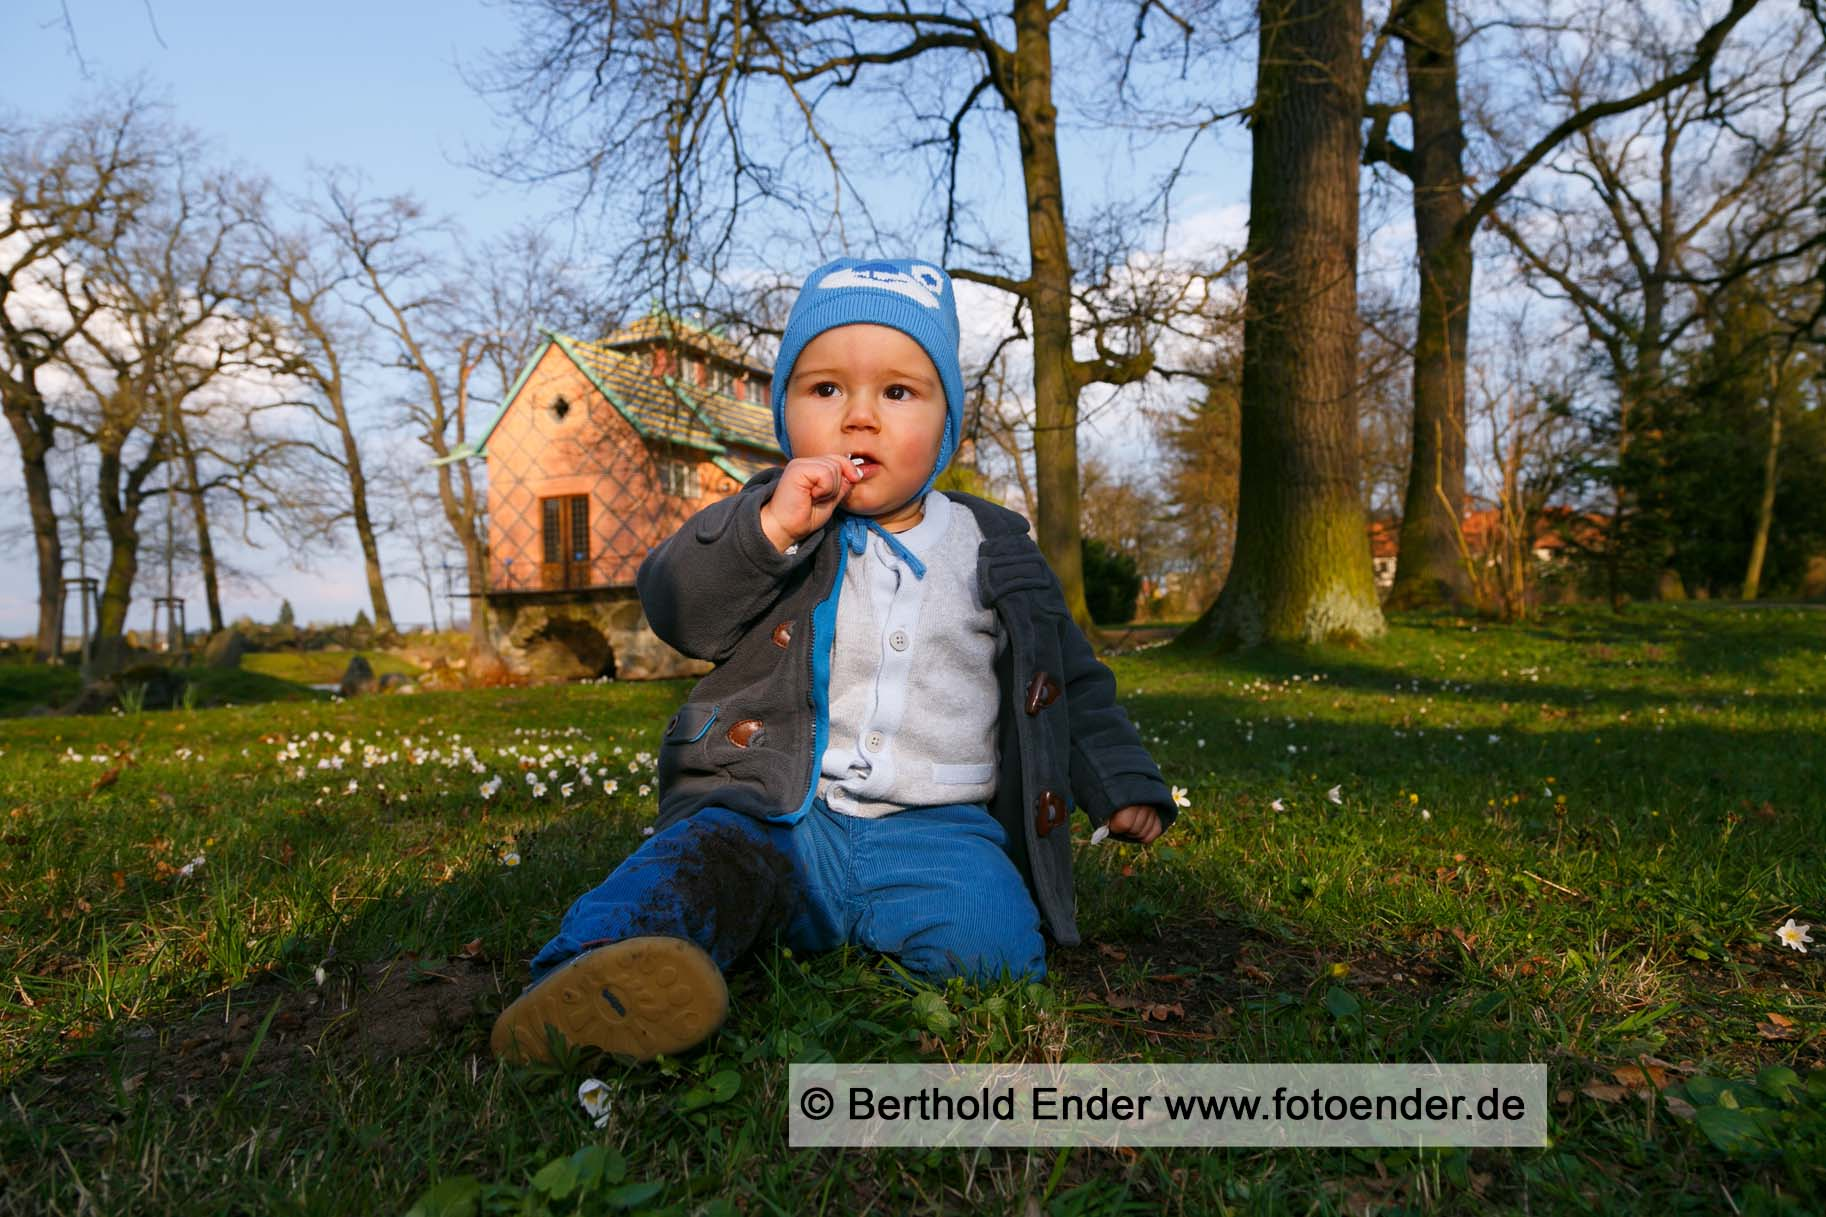 Fotoshooting on location im Park Oranienbaum - Fotostudio Ender